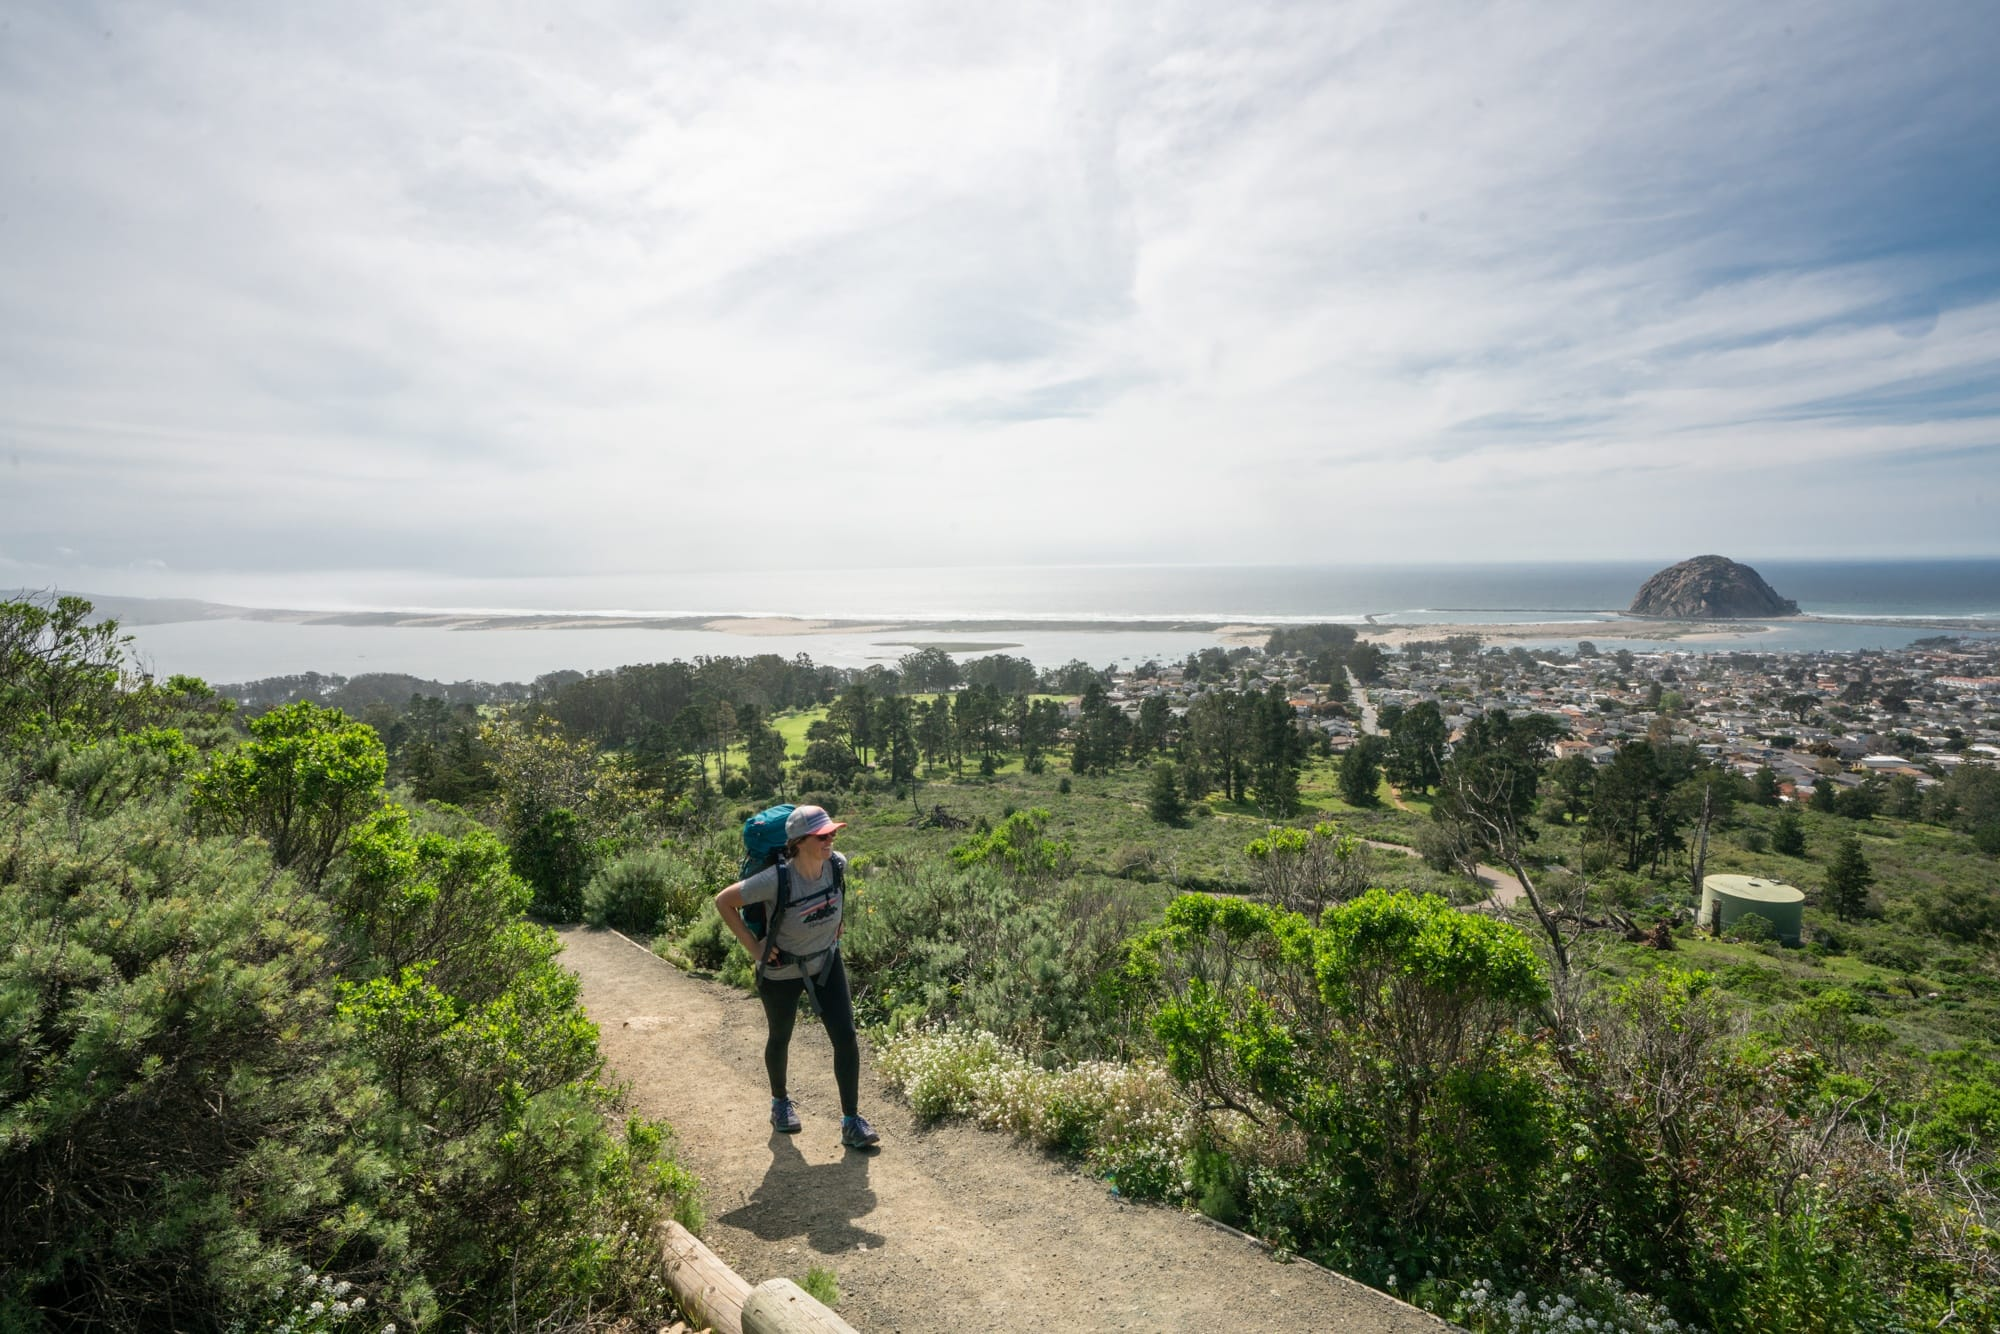 Morro Bay State Park // Plan a 6-day California coast road trip from Ventura to Cambria with this itinerary packed with outdoor adventure, amazing food, and unique places to stay.